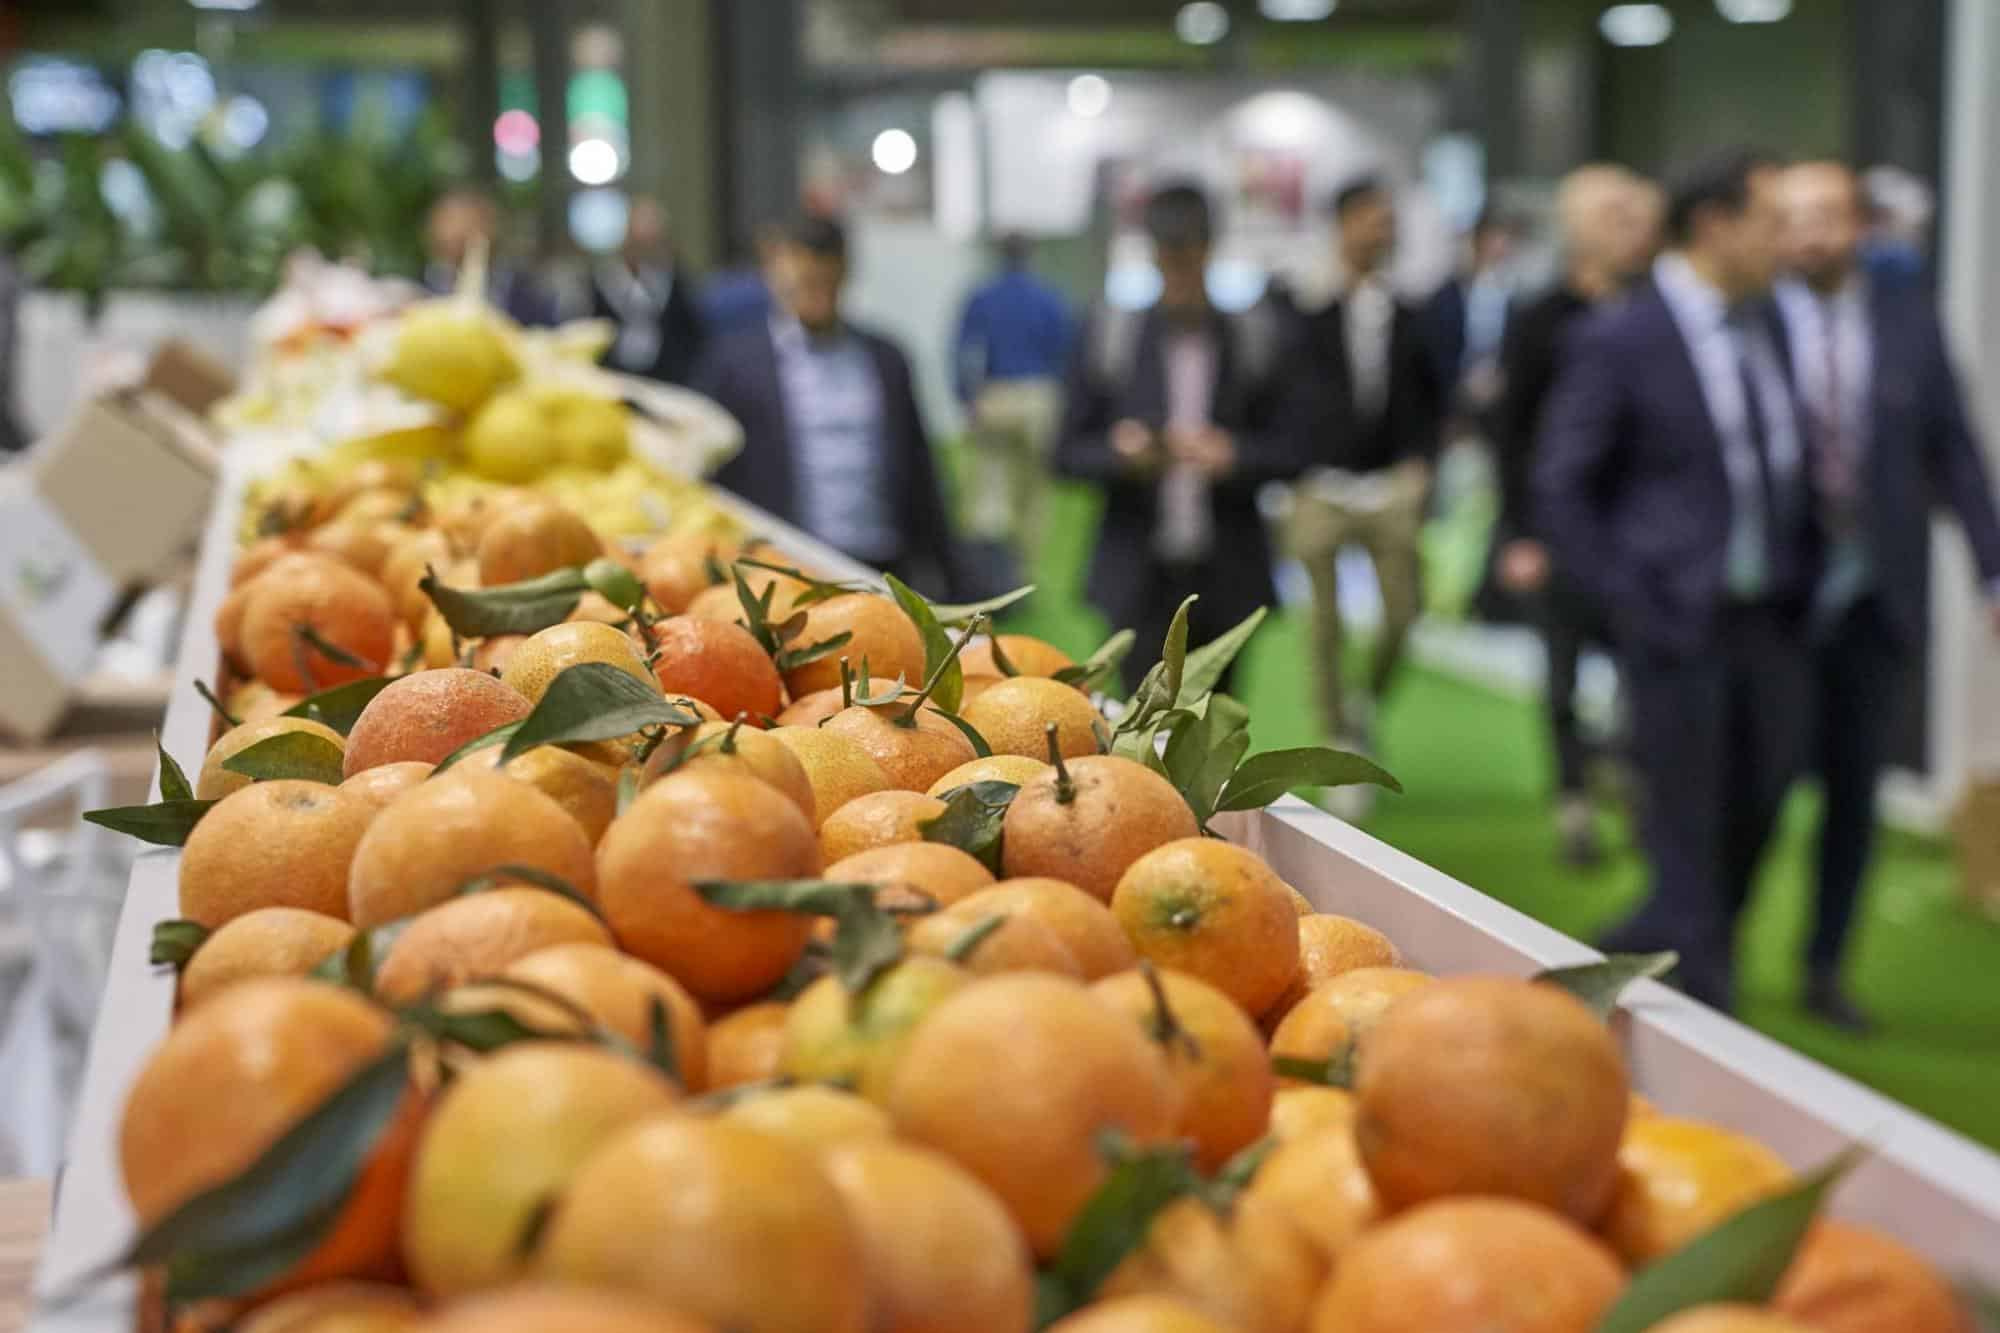 El éxito de Fruit Attraction 2019 en datos